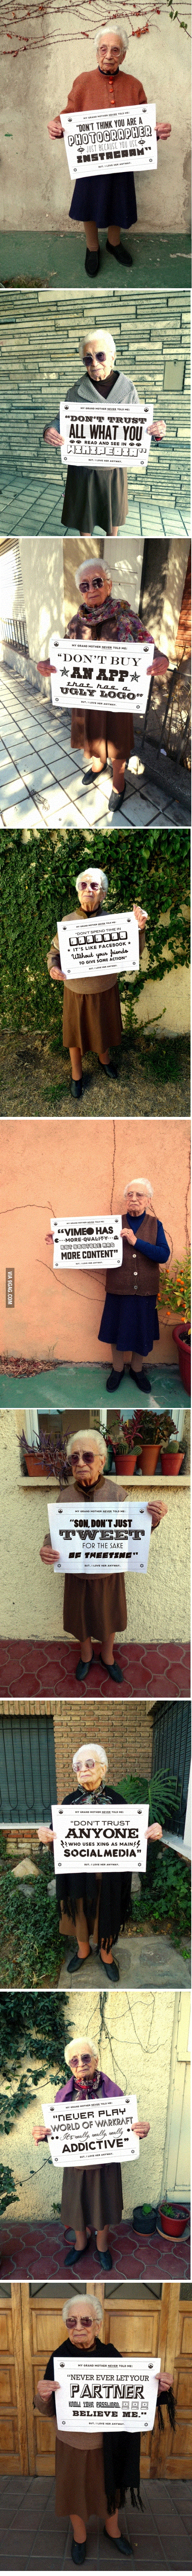 Epic Grandma Advices are Epic